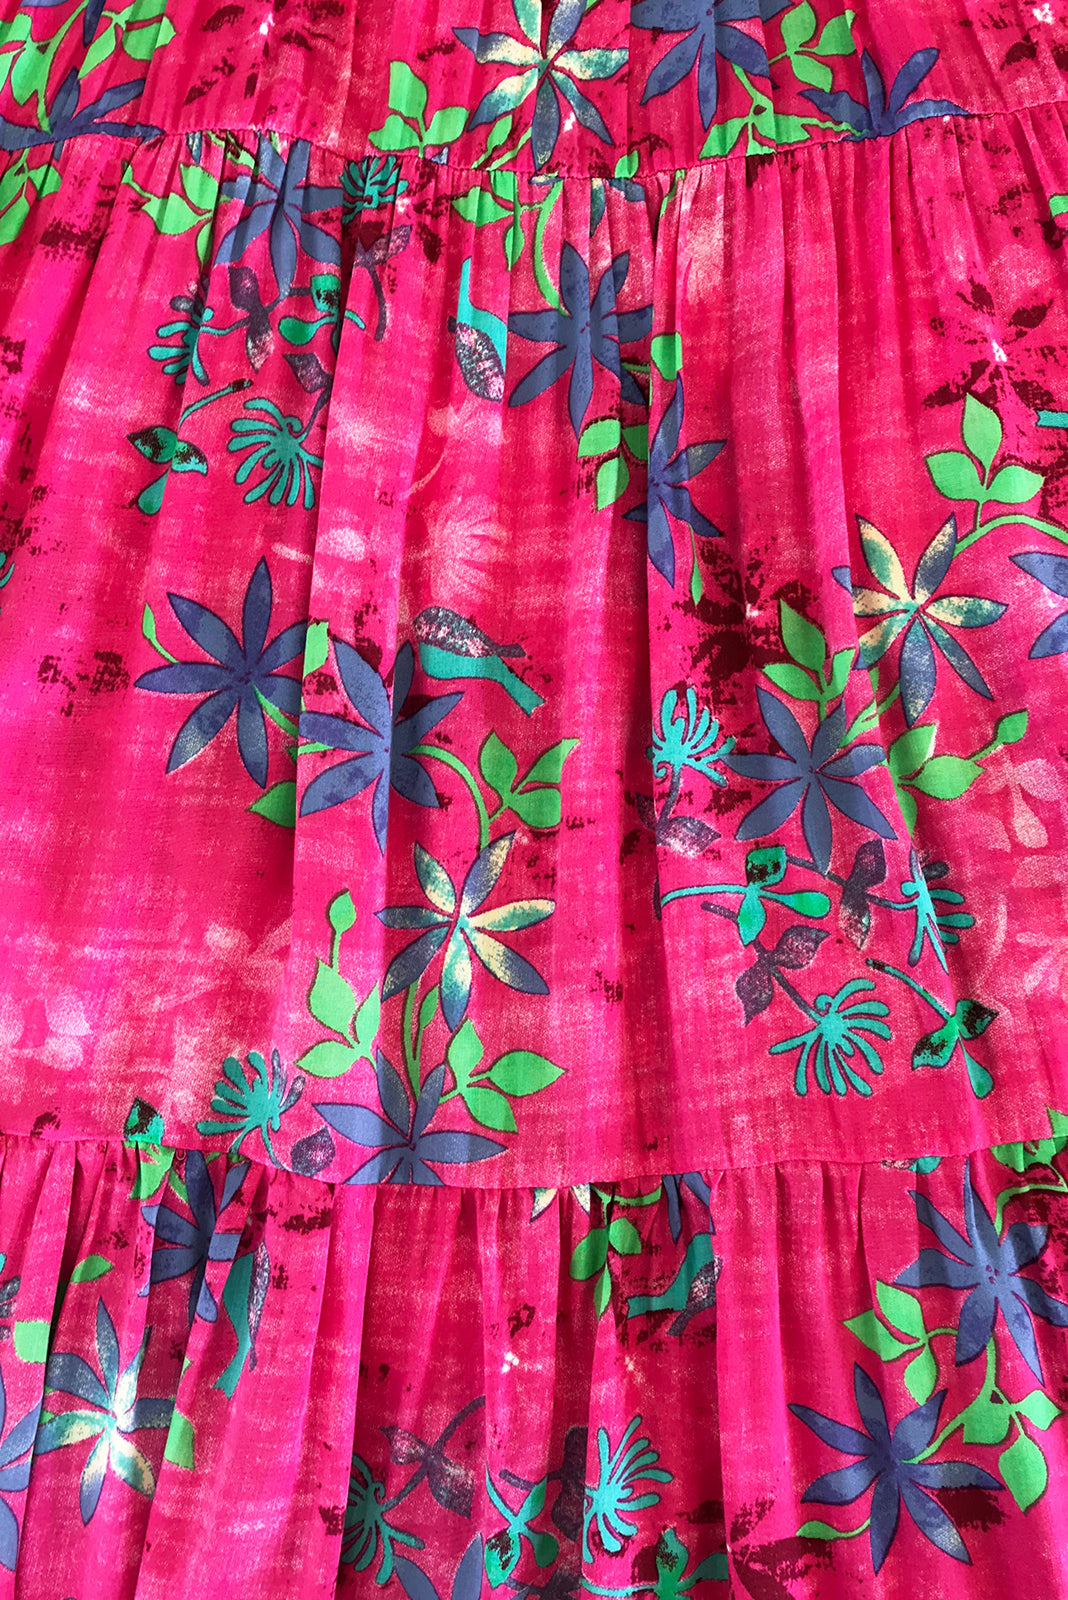 Fabric swatch o fLulu Darling Panama Pink Maxi Dress featuring 100% rayon in vibrant pink base with wash effect and blue/green florals.